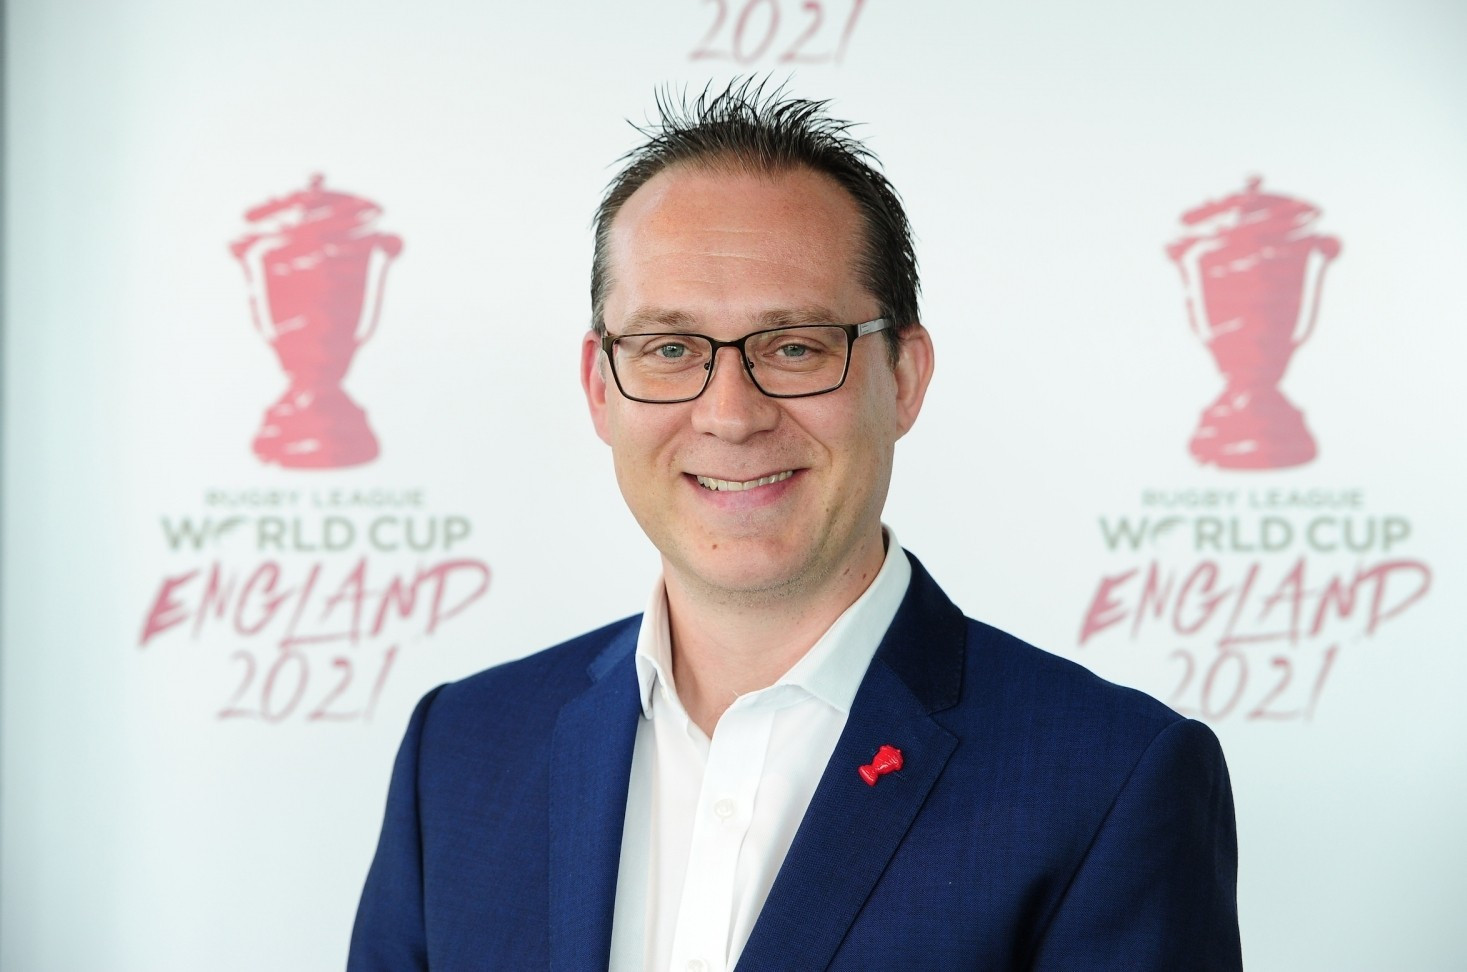 Jon Dutton, chief executive of Rugby League World Cup 2021, has said that they are